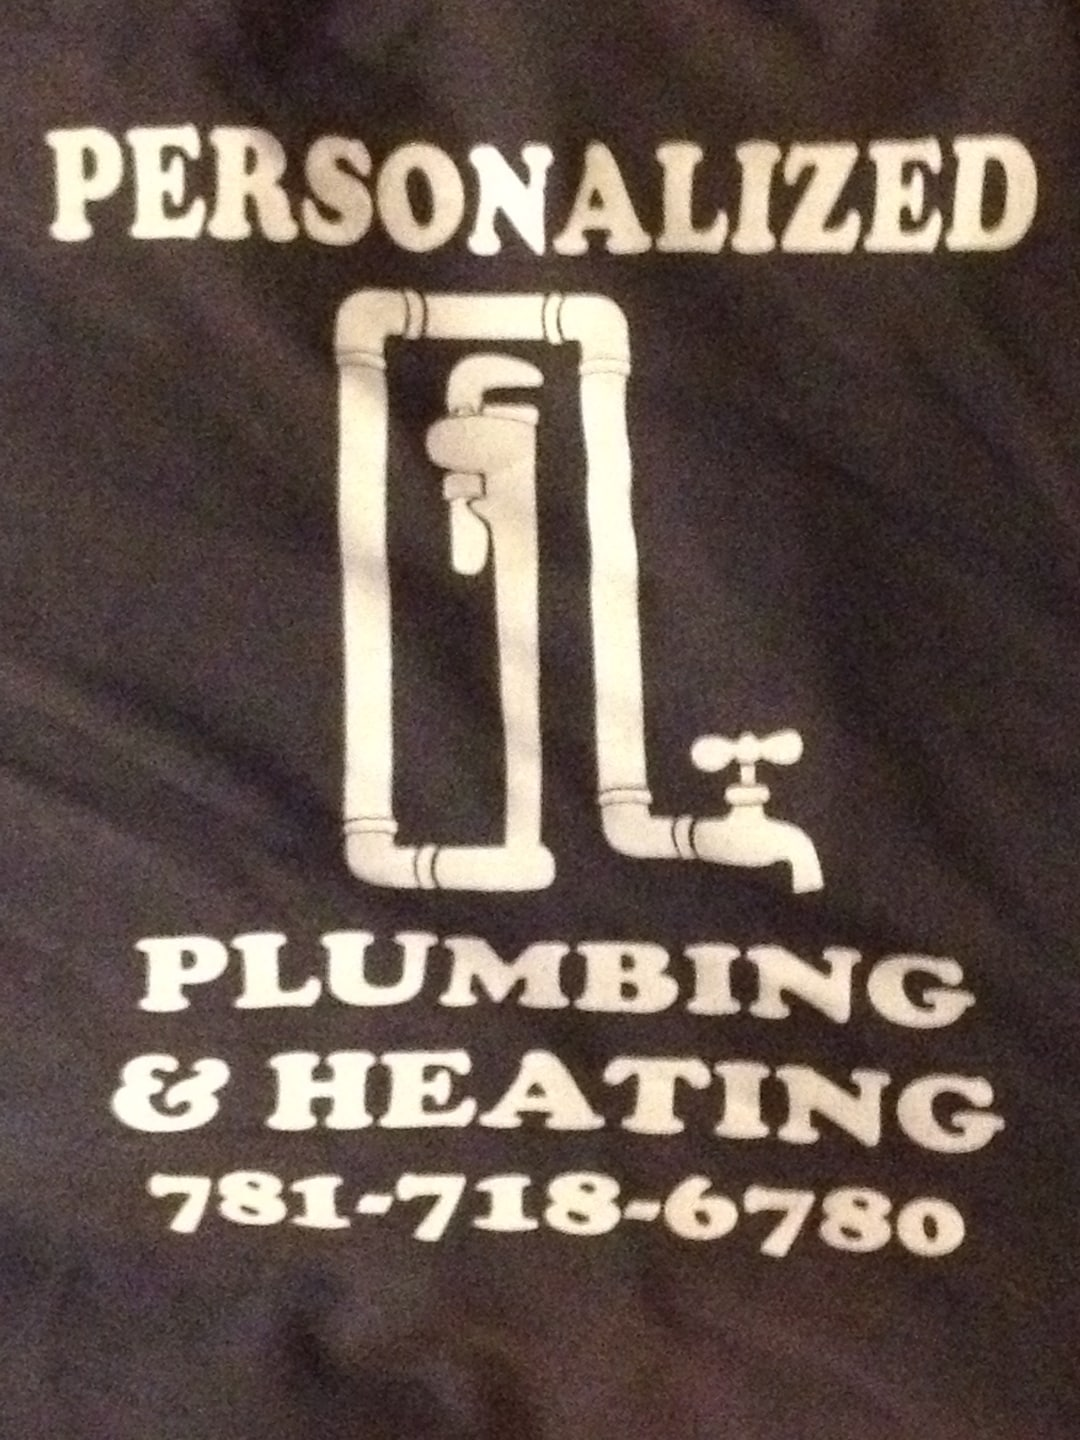 PERSONALIZED PLUMBING AND HEATING